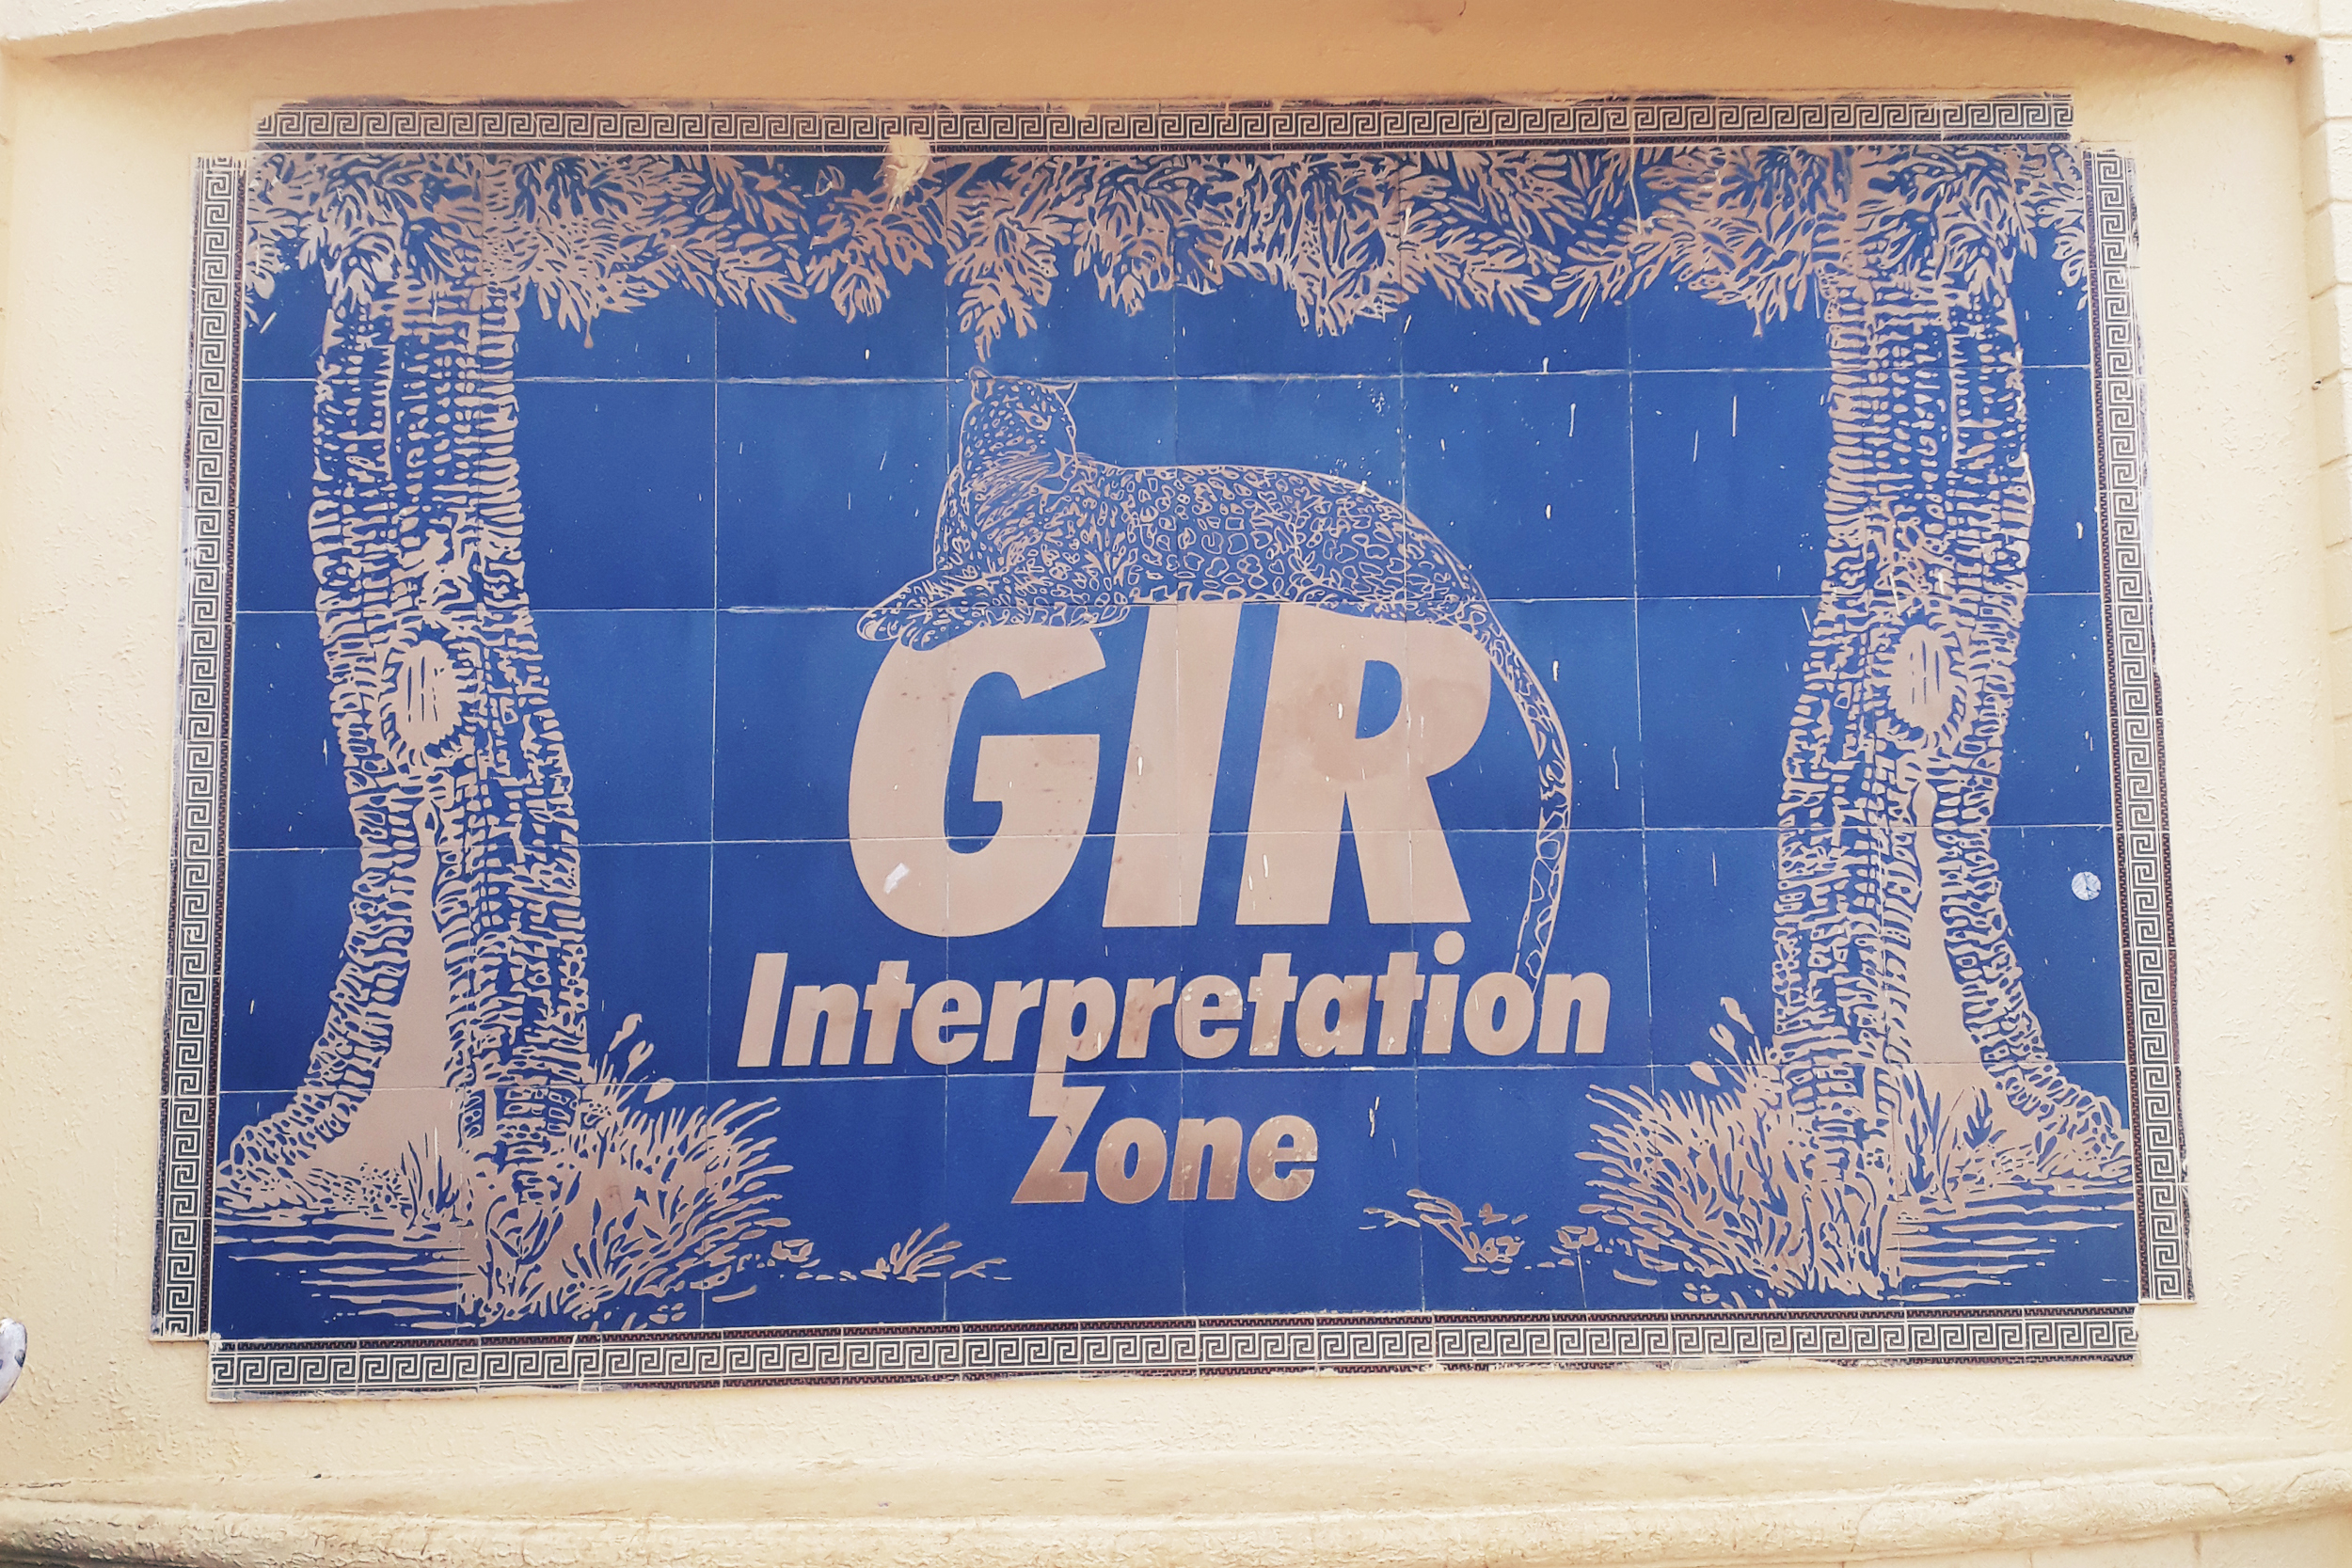 Gir Interpretation zone